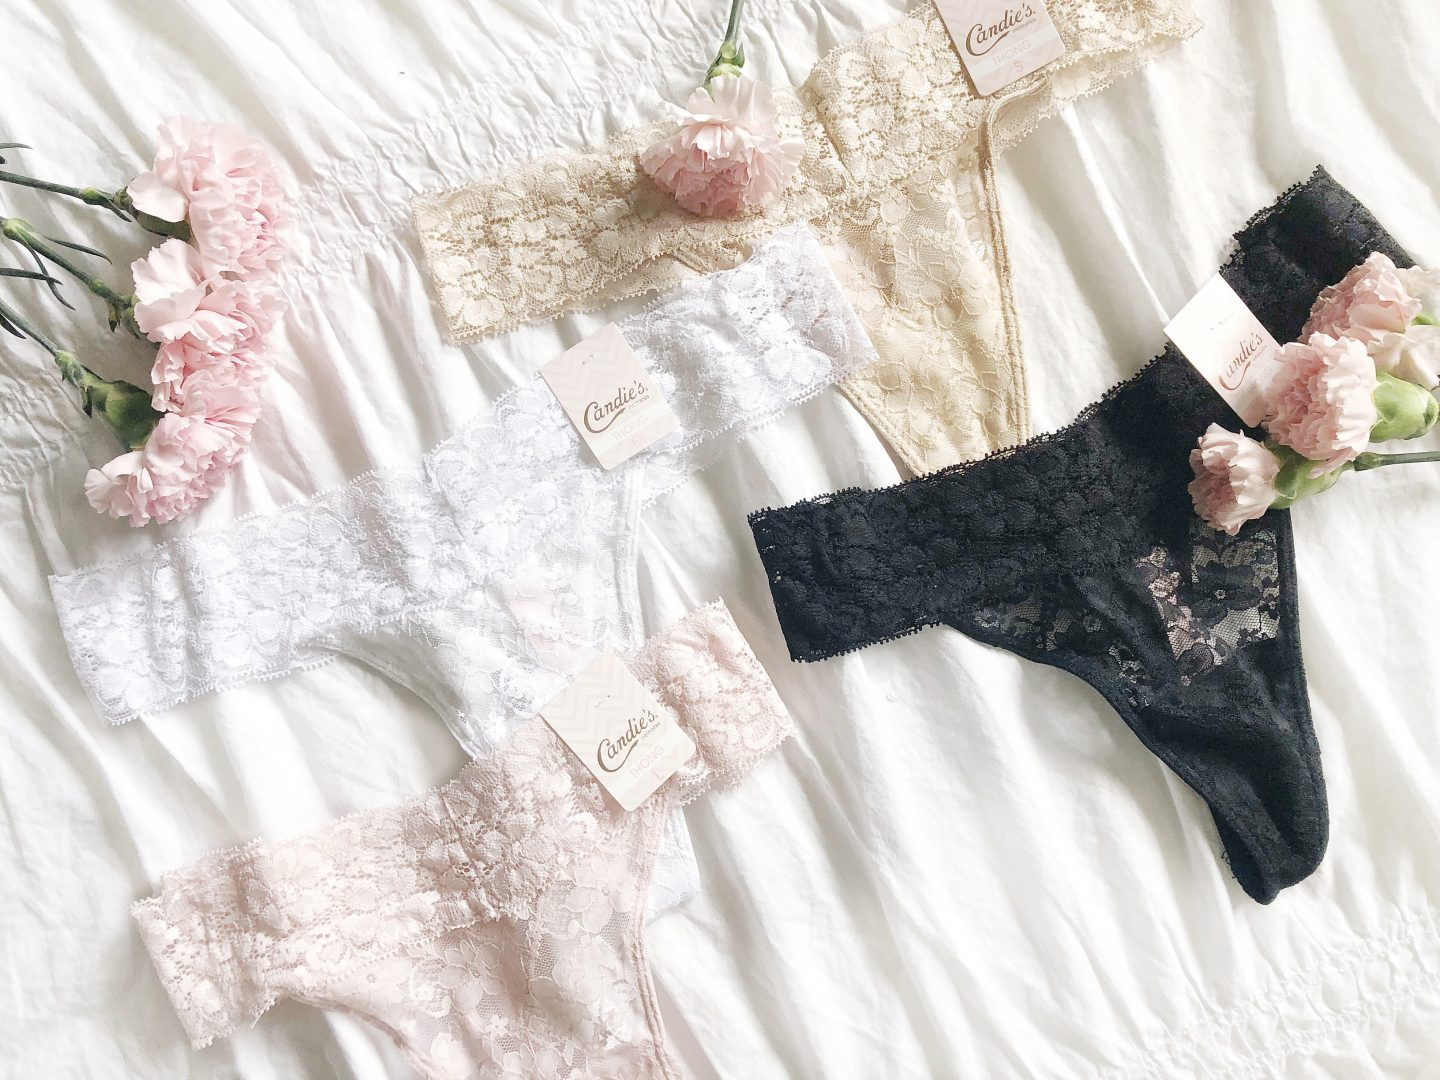 Comfortable and Cute Underwear for Everyday, candies at kohls, everyday beautiful underwear, beautiful bras and underwear for everyday, comfortable and cute everyday underwear